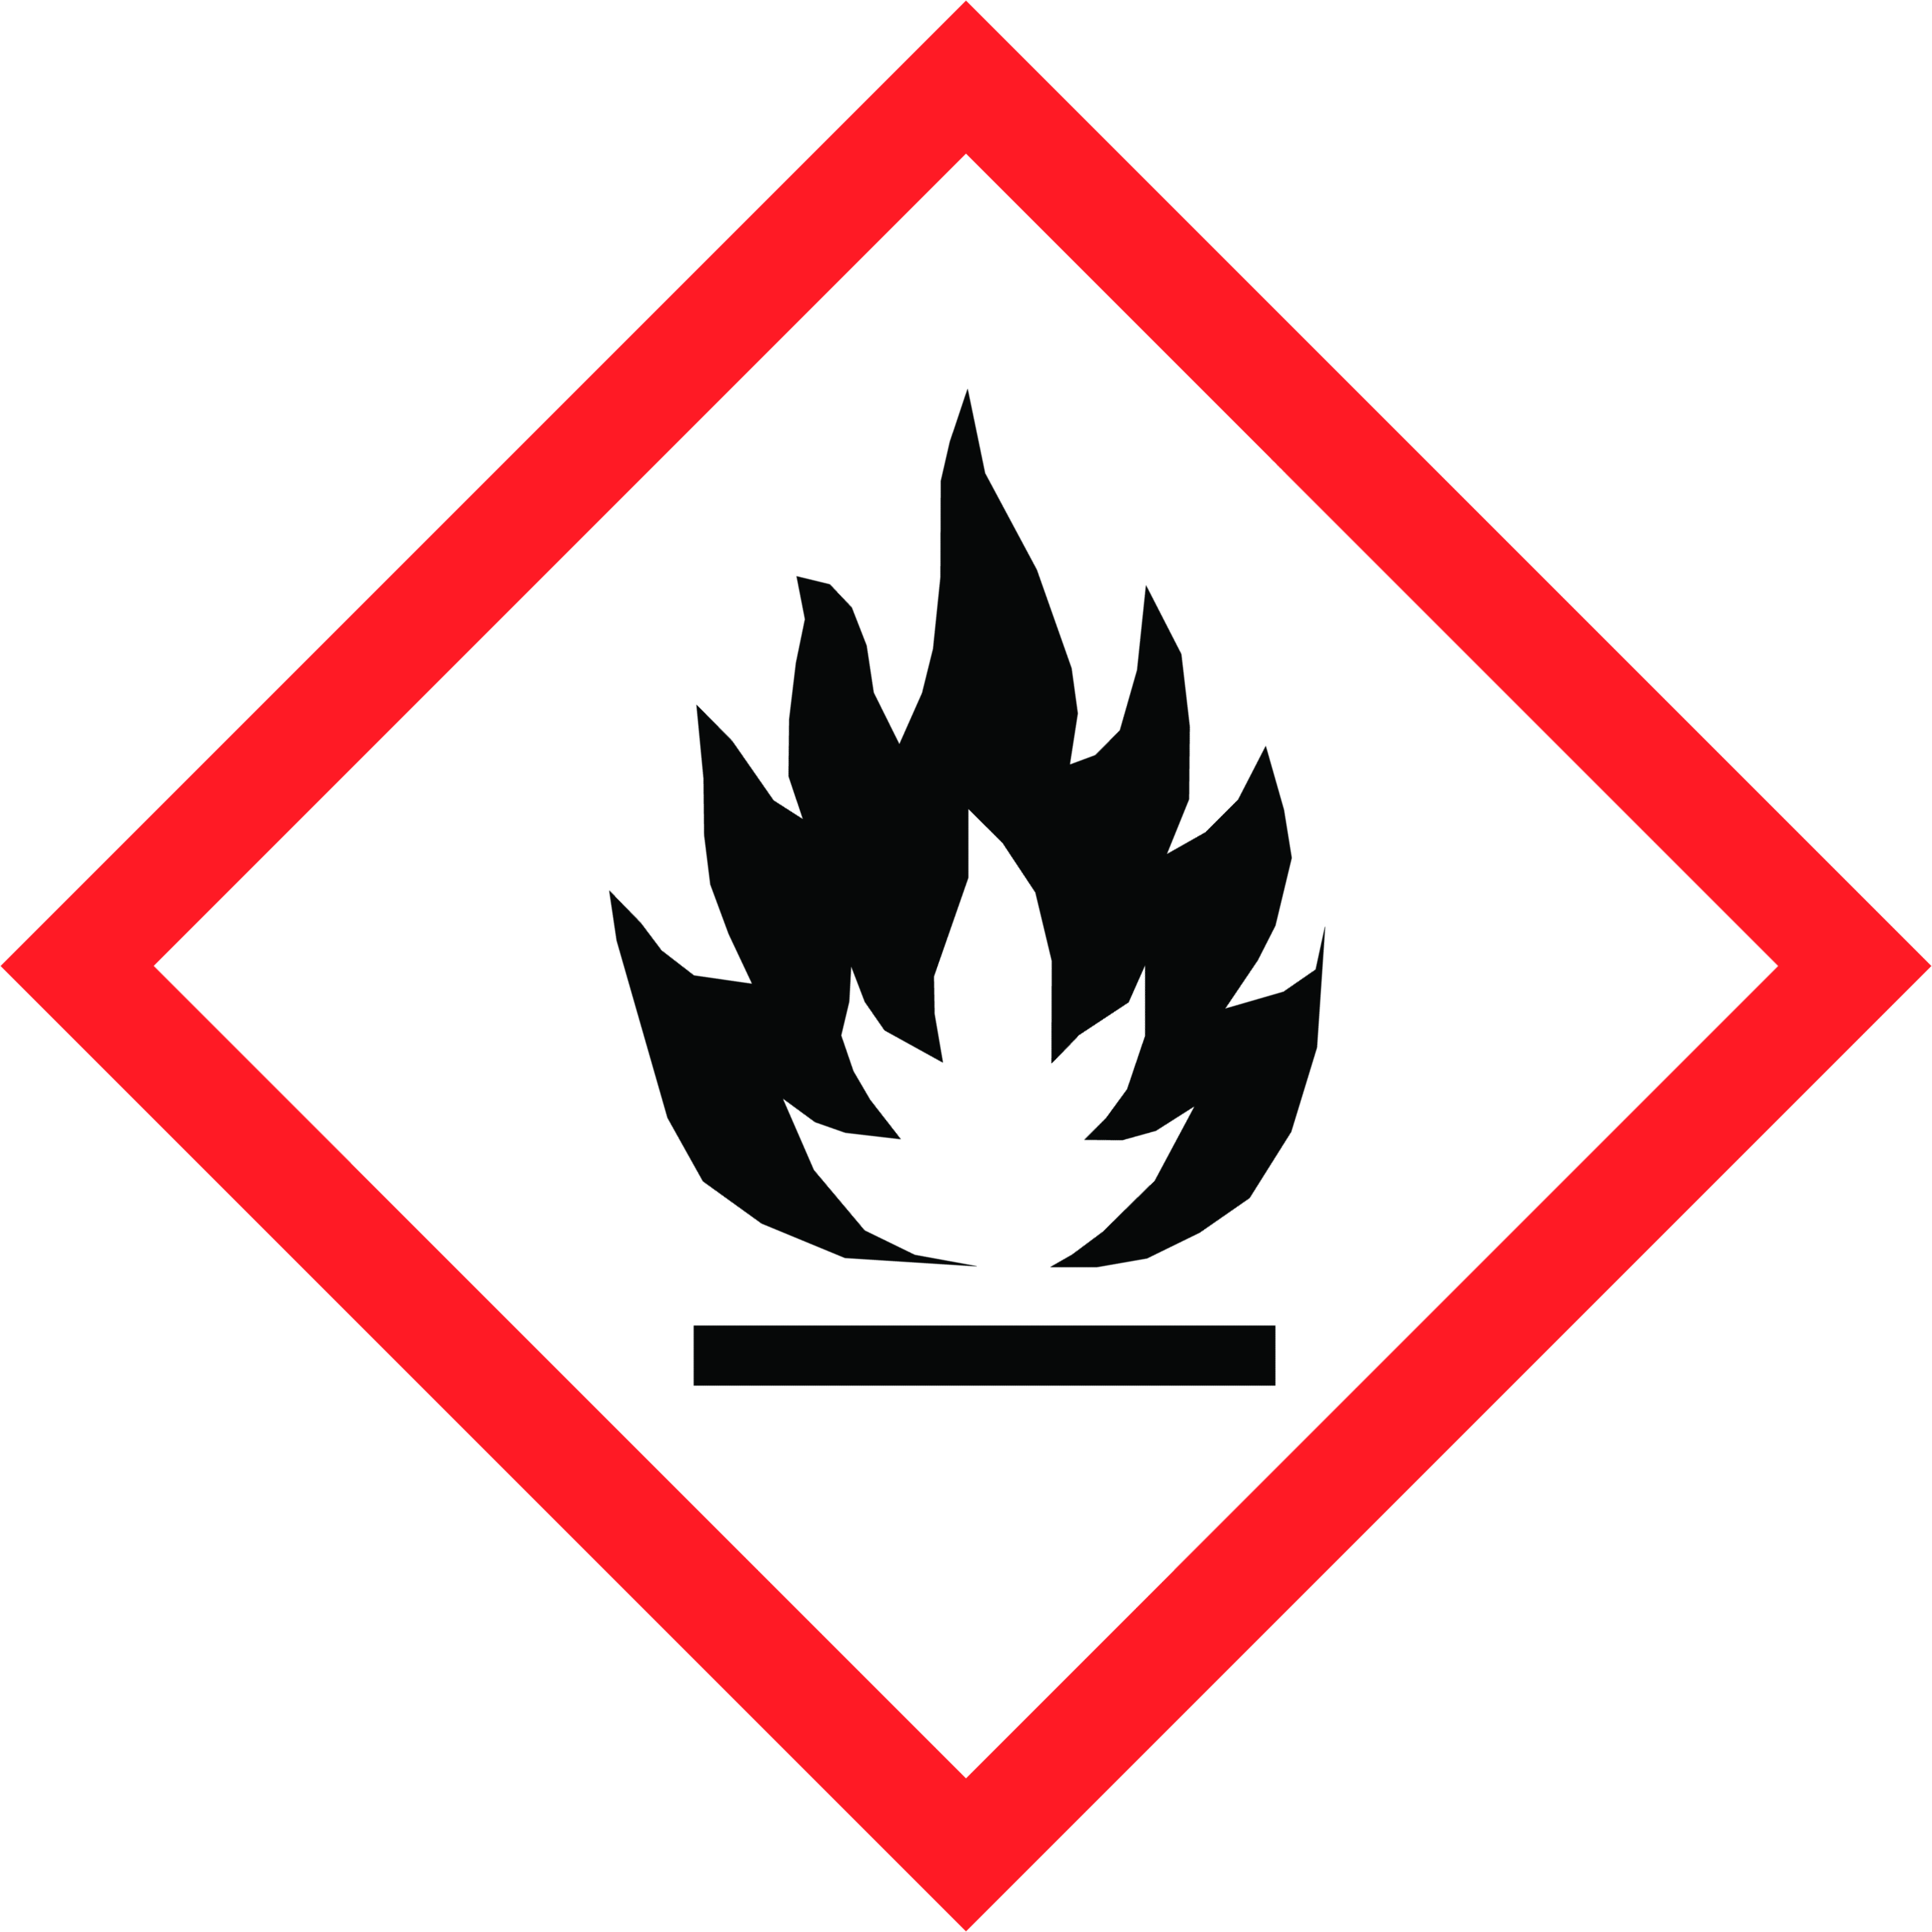 GHS02_flamme.png